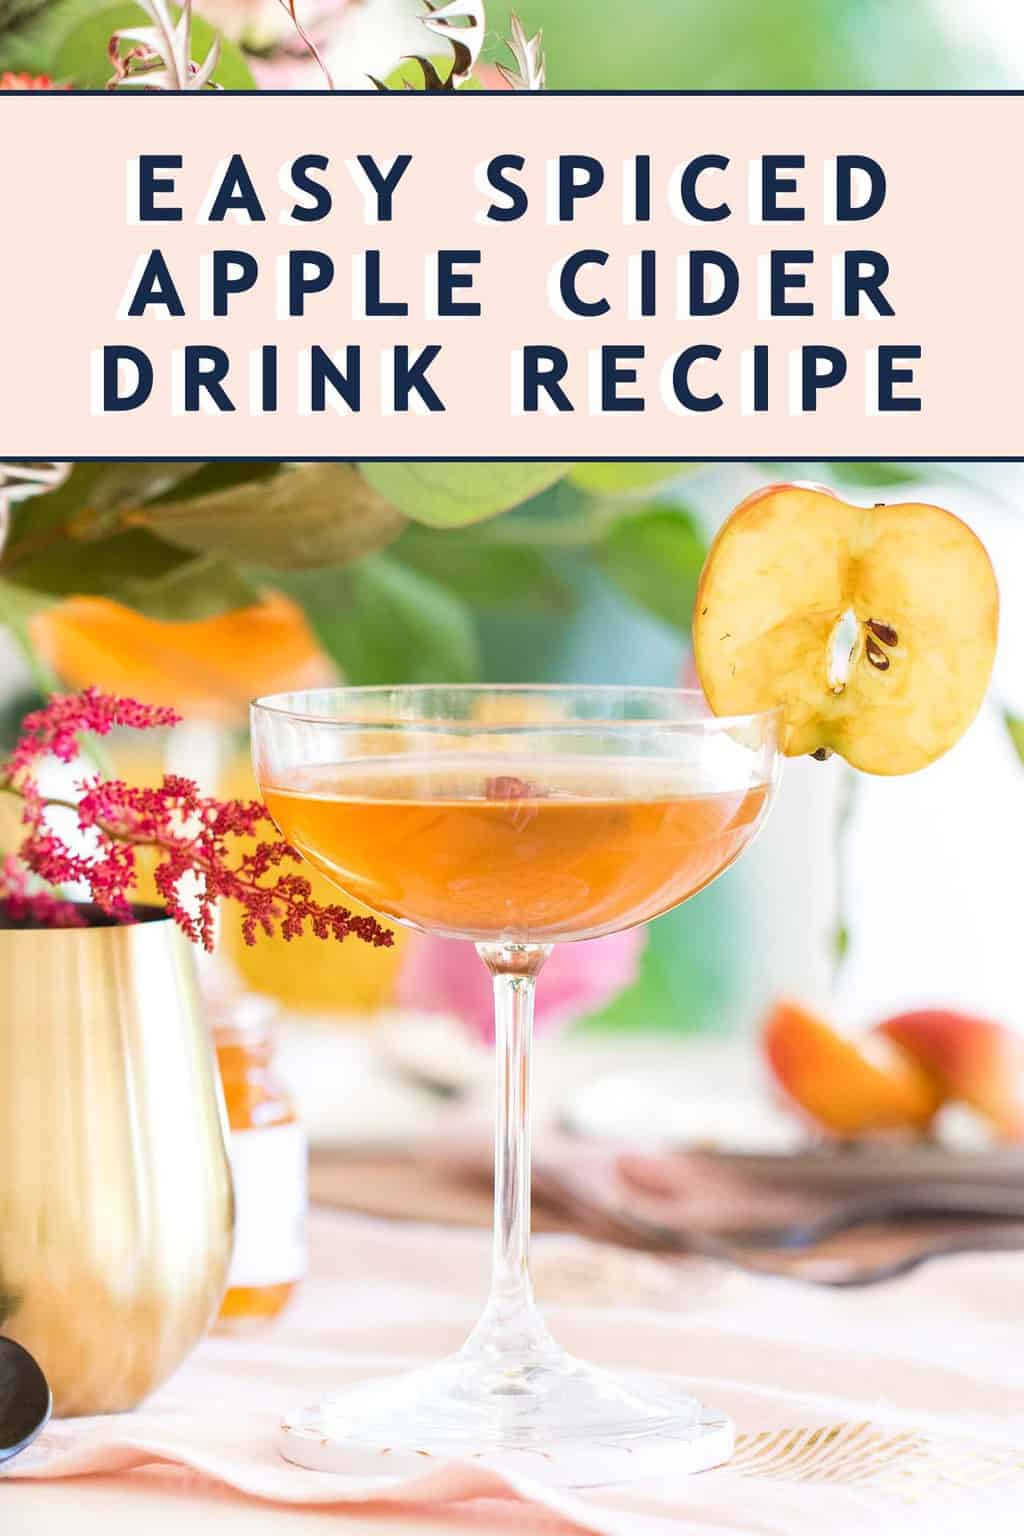 Photo of the Easy Spiced Apple Cider Cocktail drink recipe by top Houston lifestyle blogger Ashley Rose of Sugar & Cloth